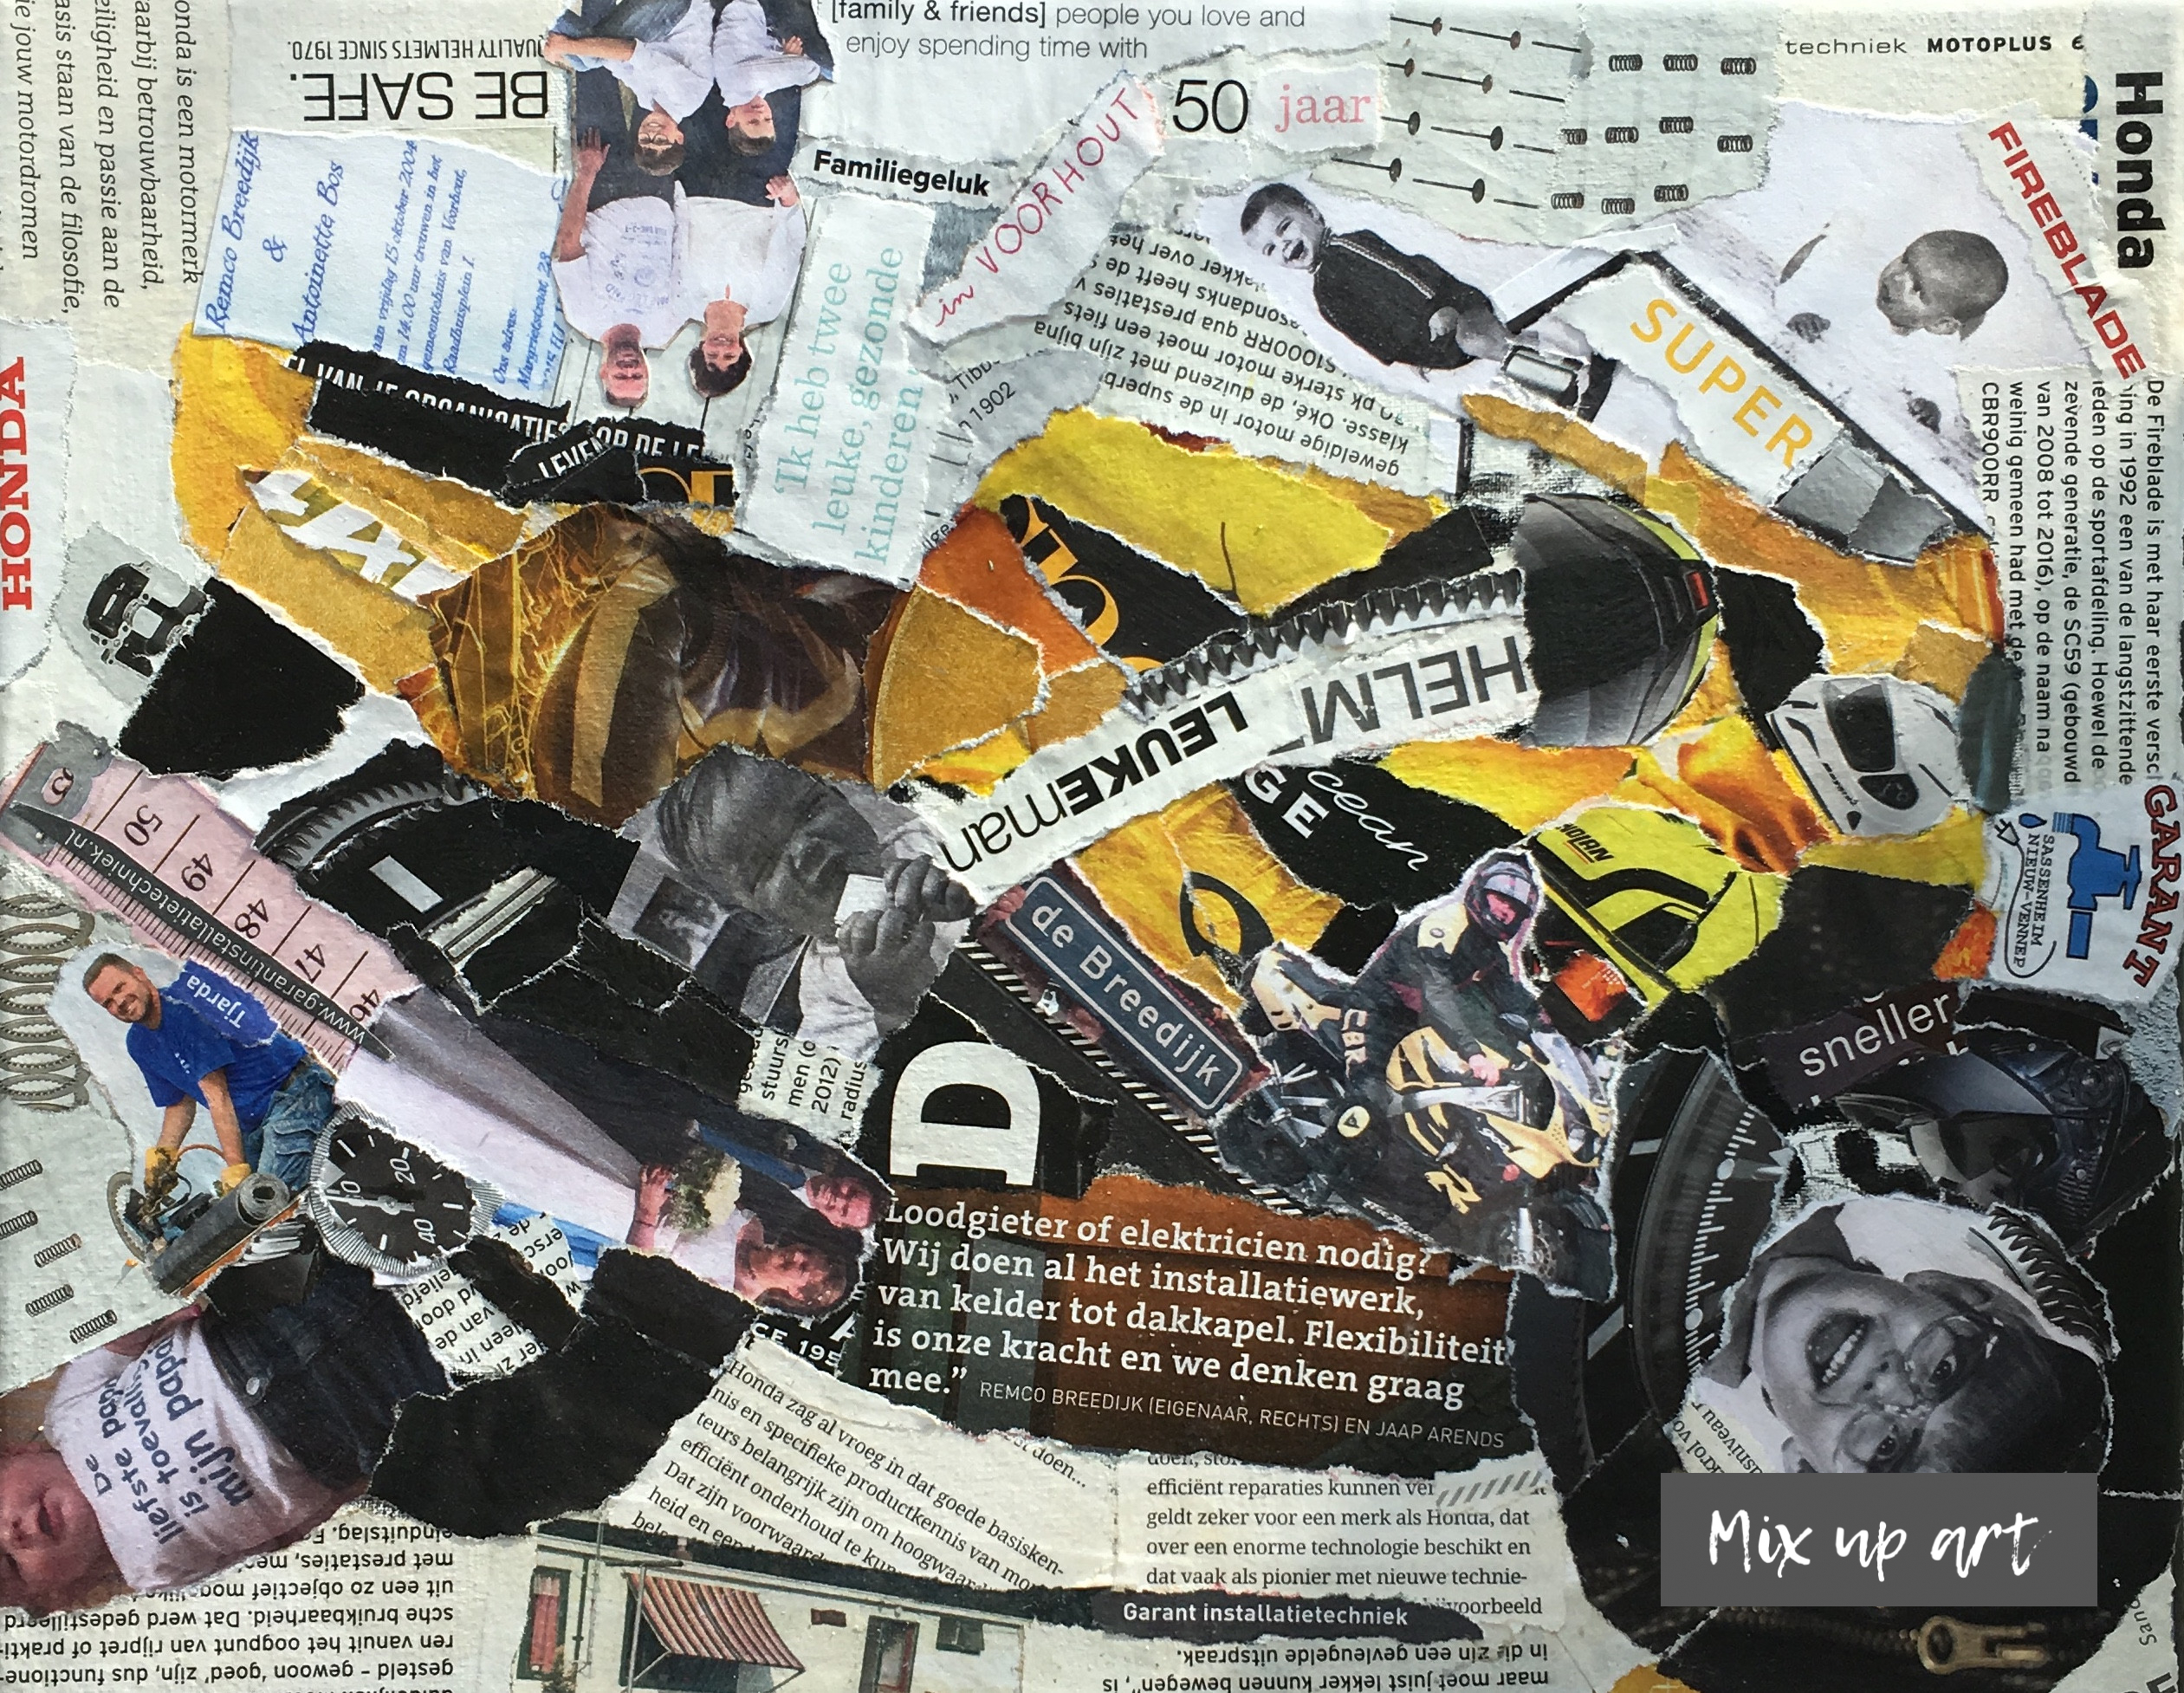 Honda fireblade 900 - In opdracht / collage op 3D canvas (24 x 30)